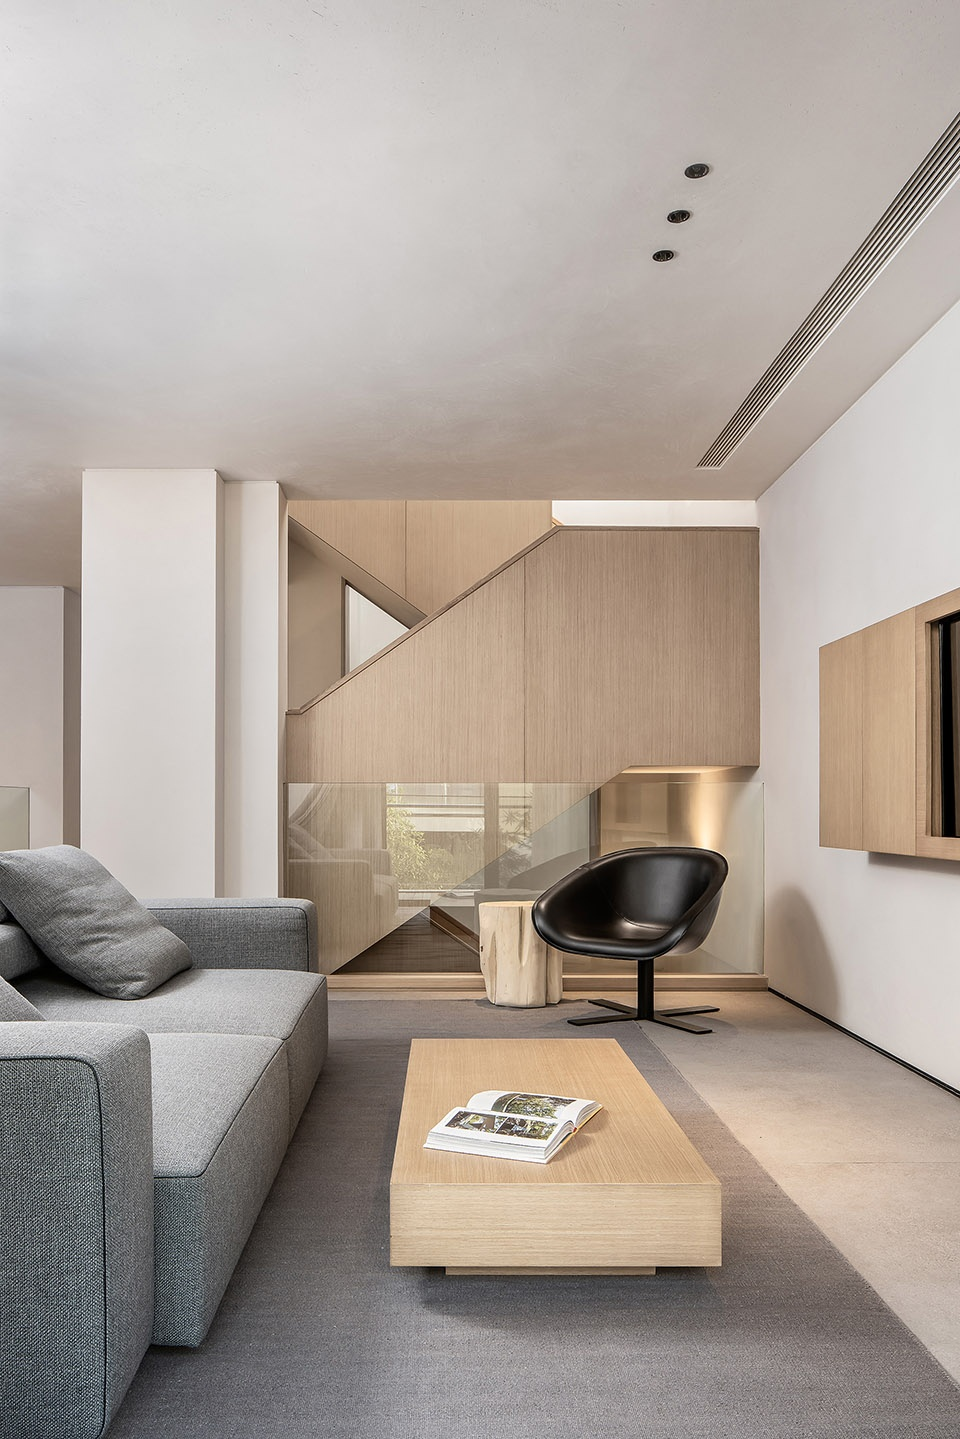 046-a-desired-home-china-by-liang-architecture-studio-960x1439.jpg